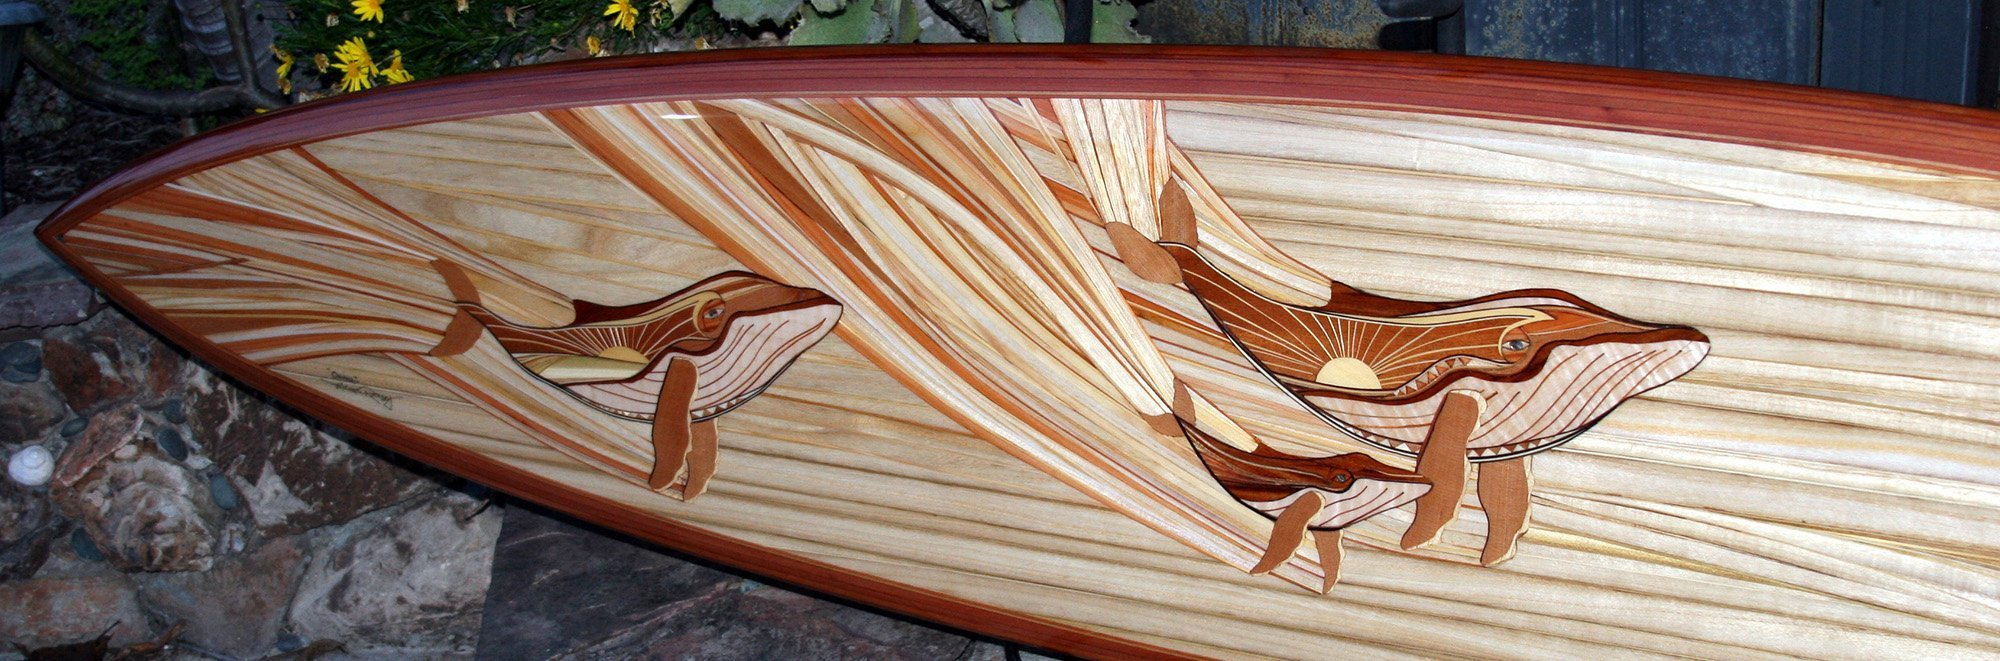 michael rumsey wood surfboard titled ohana with artwork depicting whales using only natural colors from reclaimed lumber